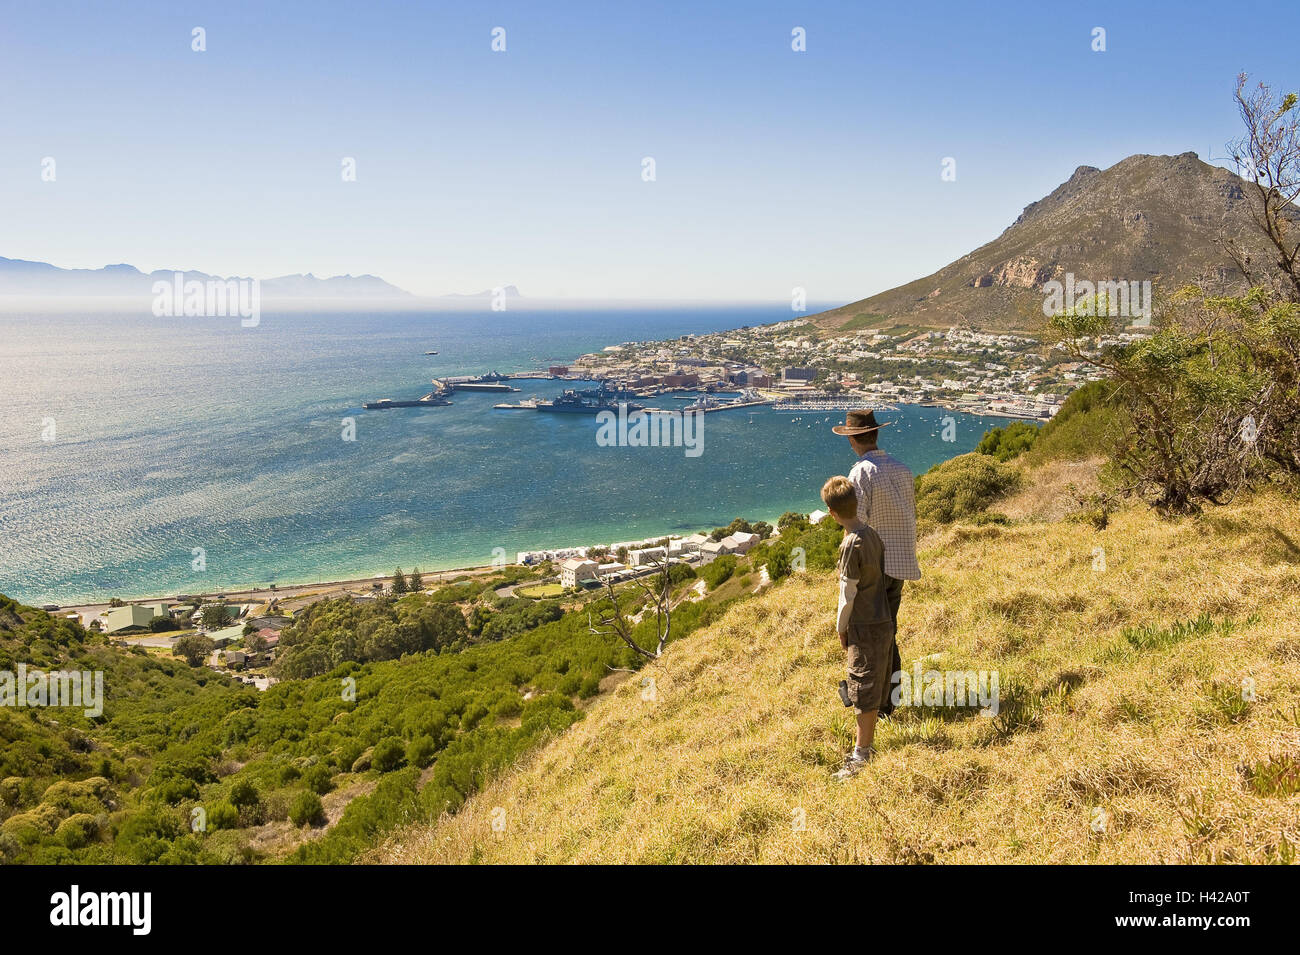 Simons Town Naval Base Stock Photos Amp Simons Town Naval Base Stock Images Alamy